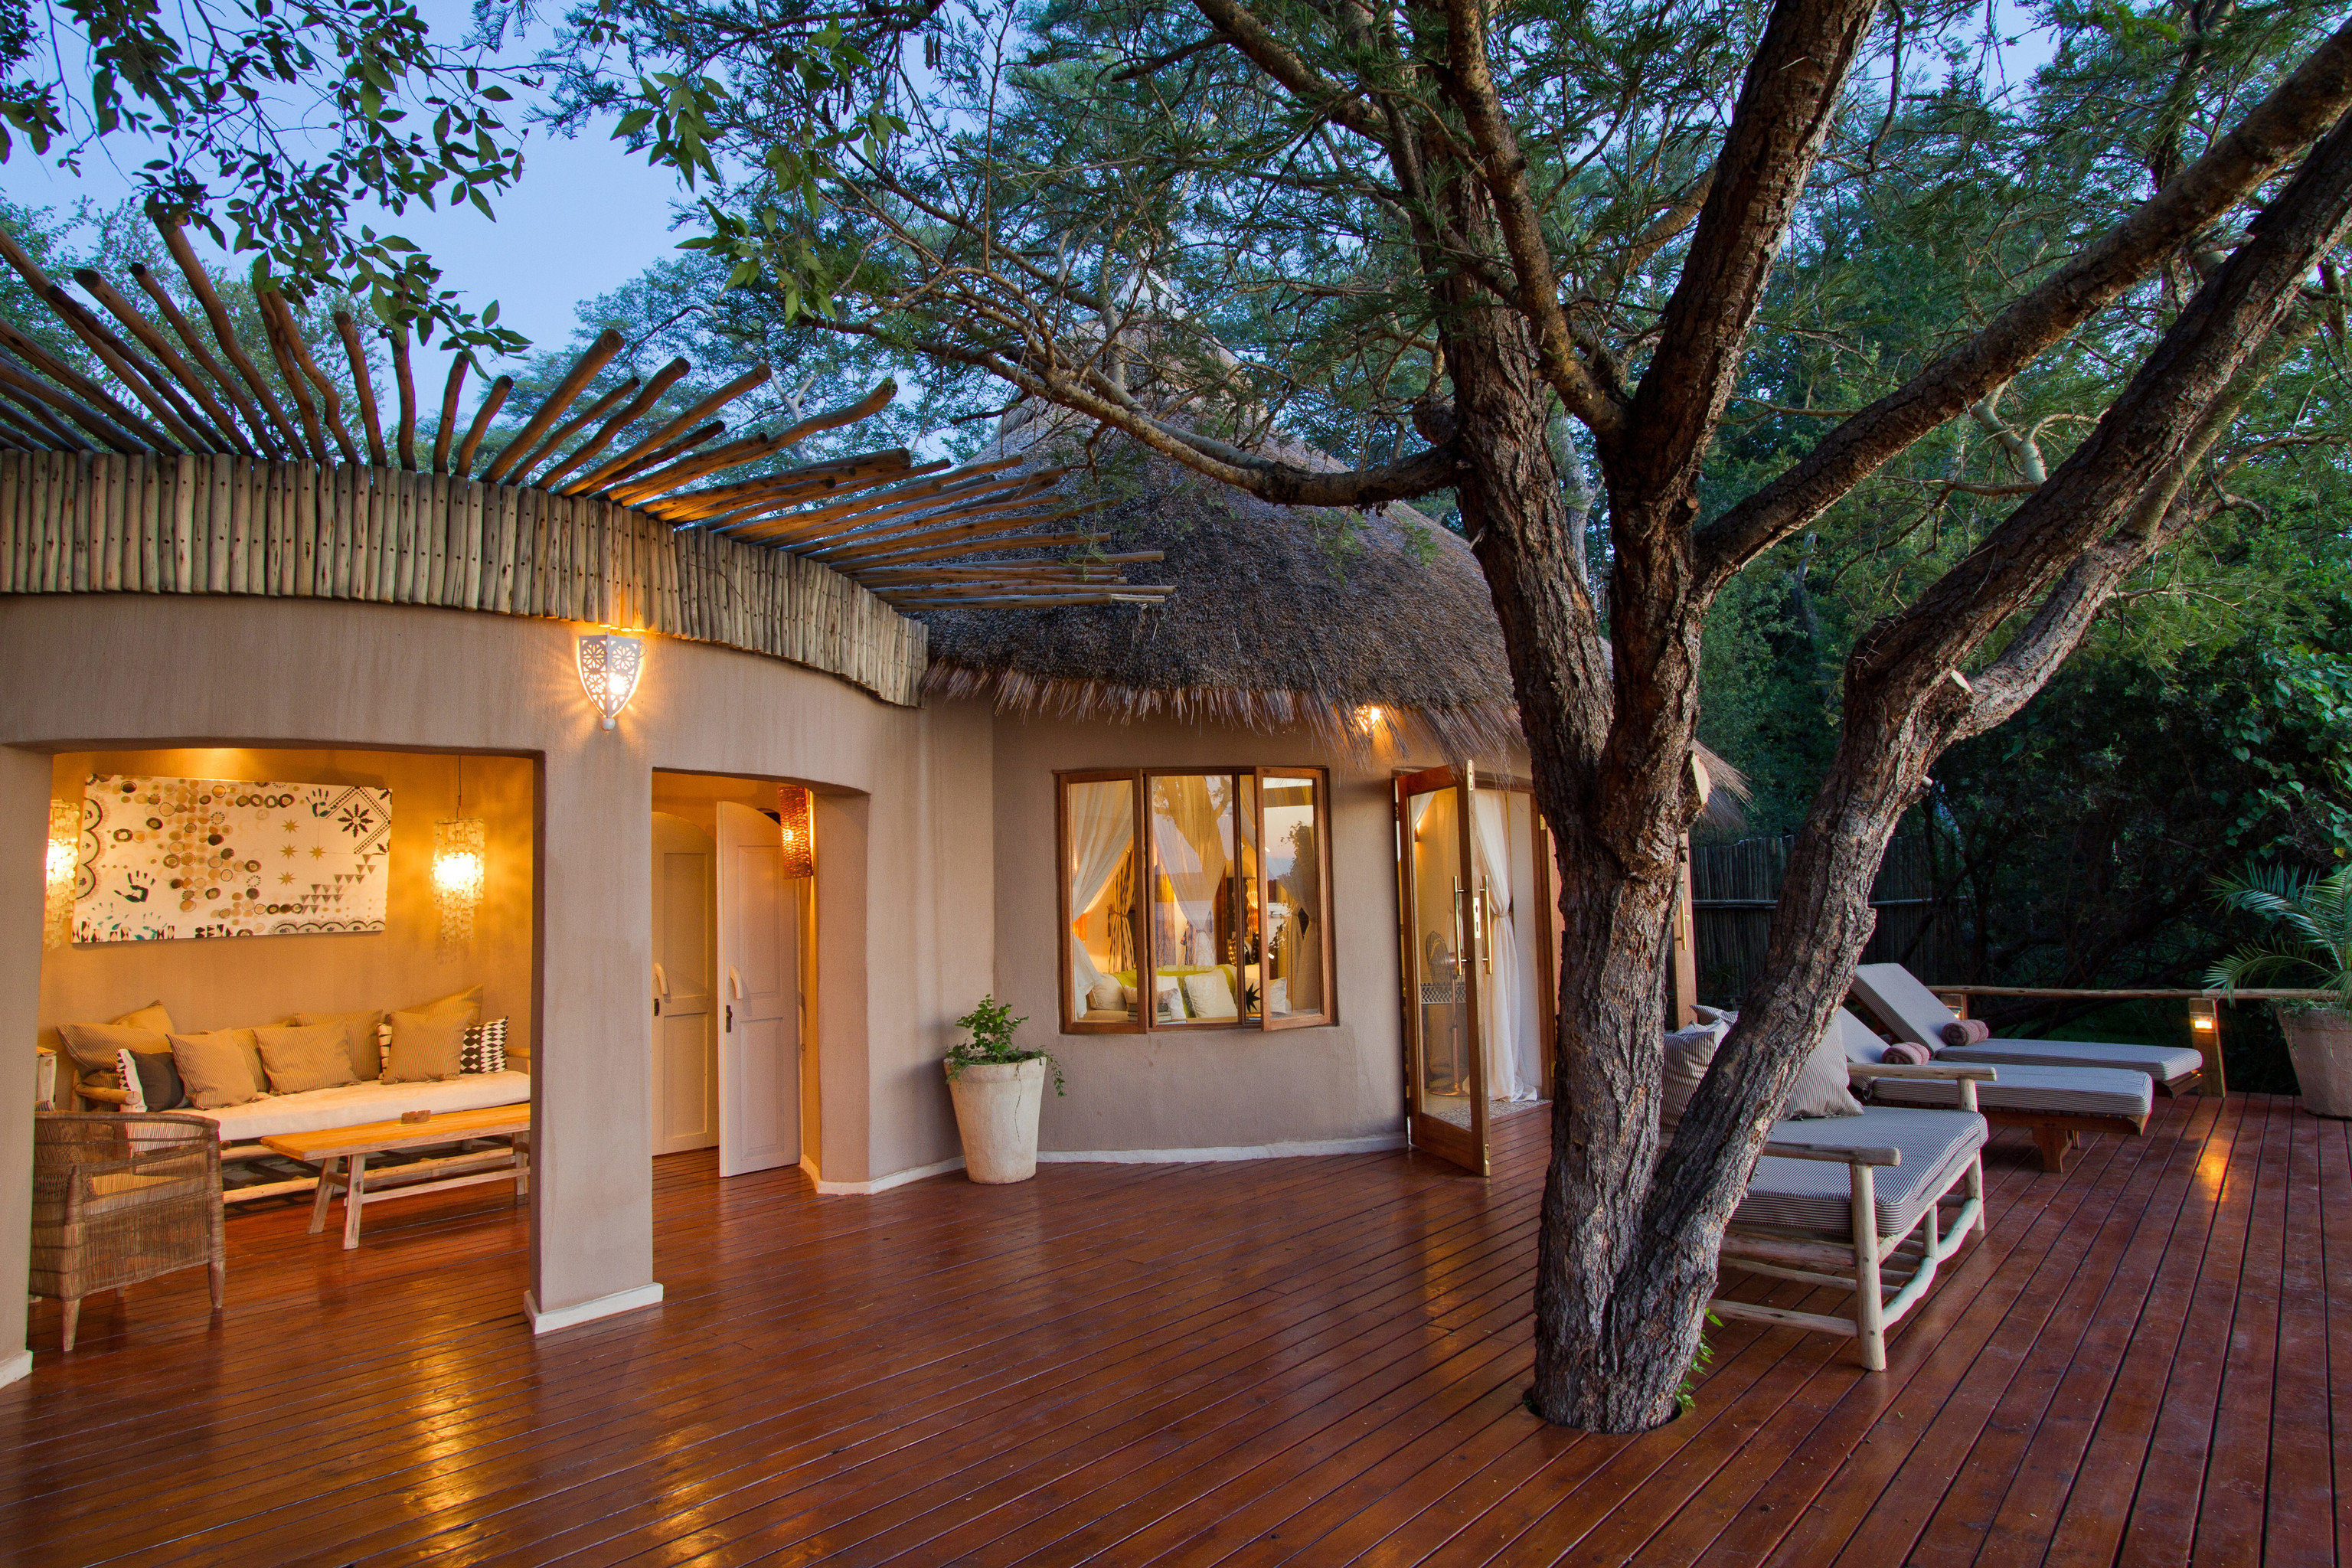 tree property home wooden house camp outdoor structure Resort Villa